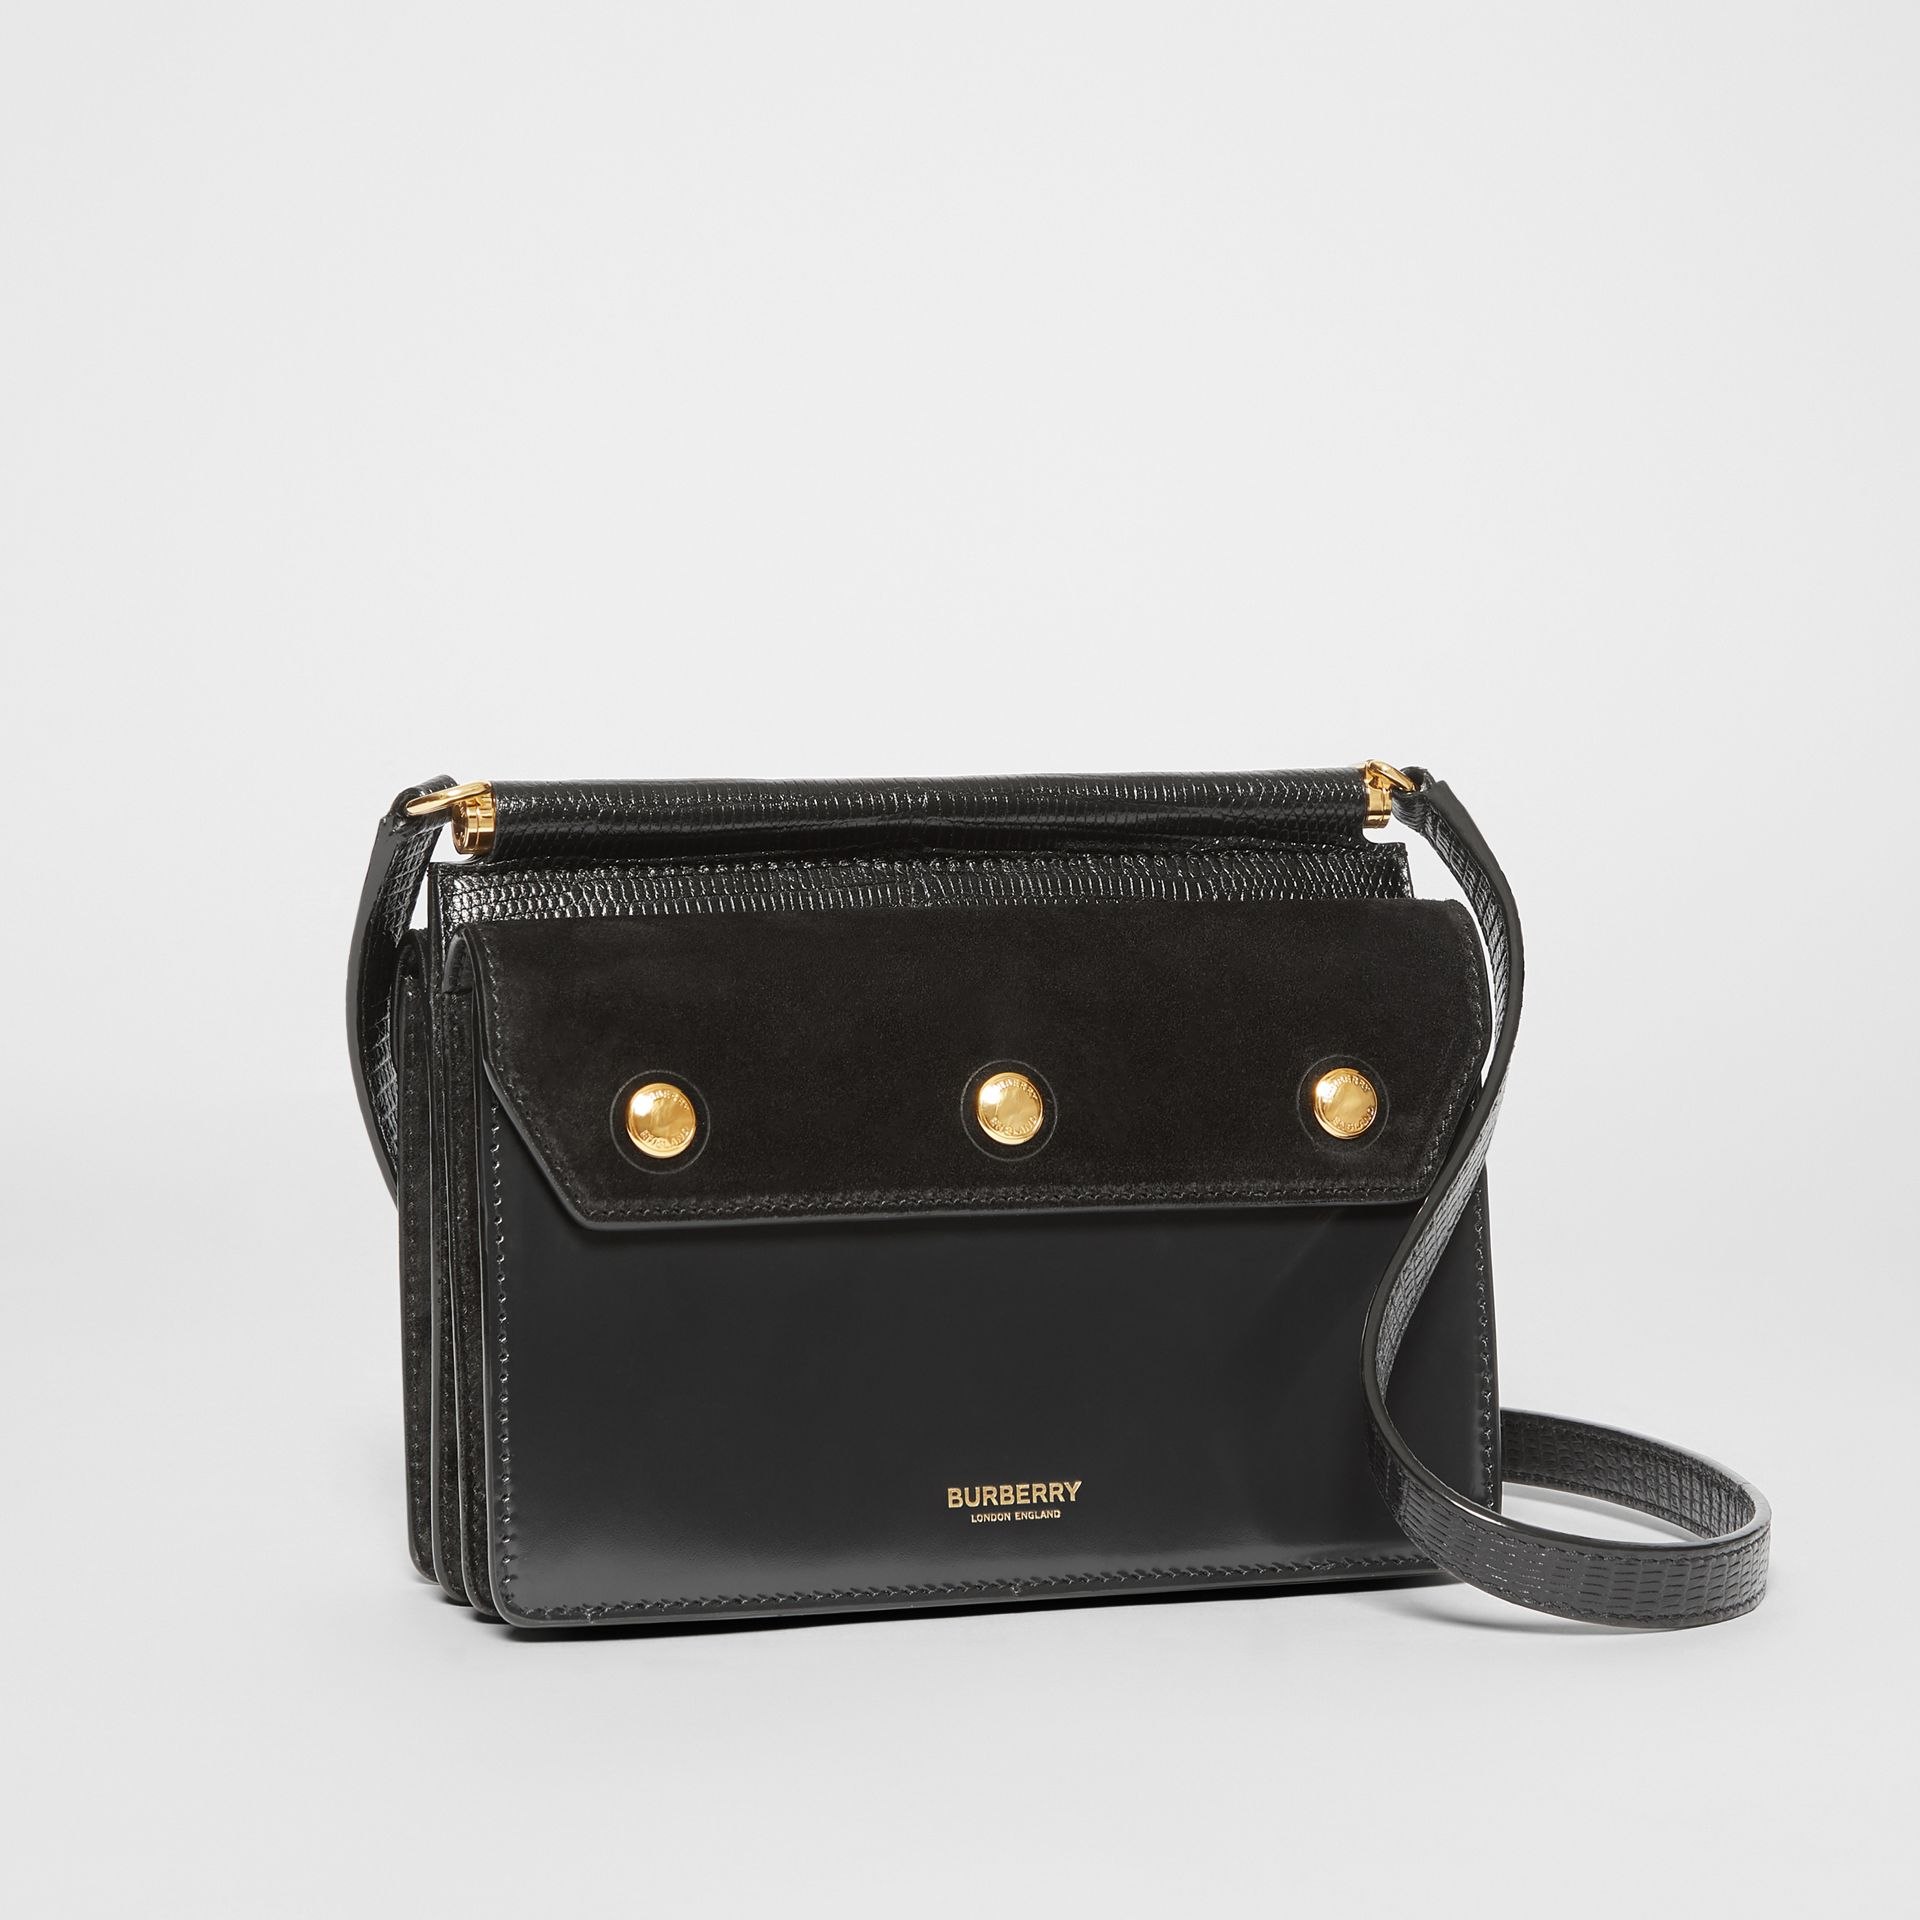 Mini Suede and Leather Title Bag with Pocket Detail in Black - Women | Burberry United Kingdom - gallery image 4